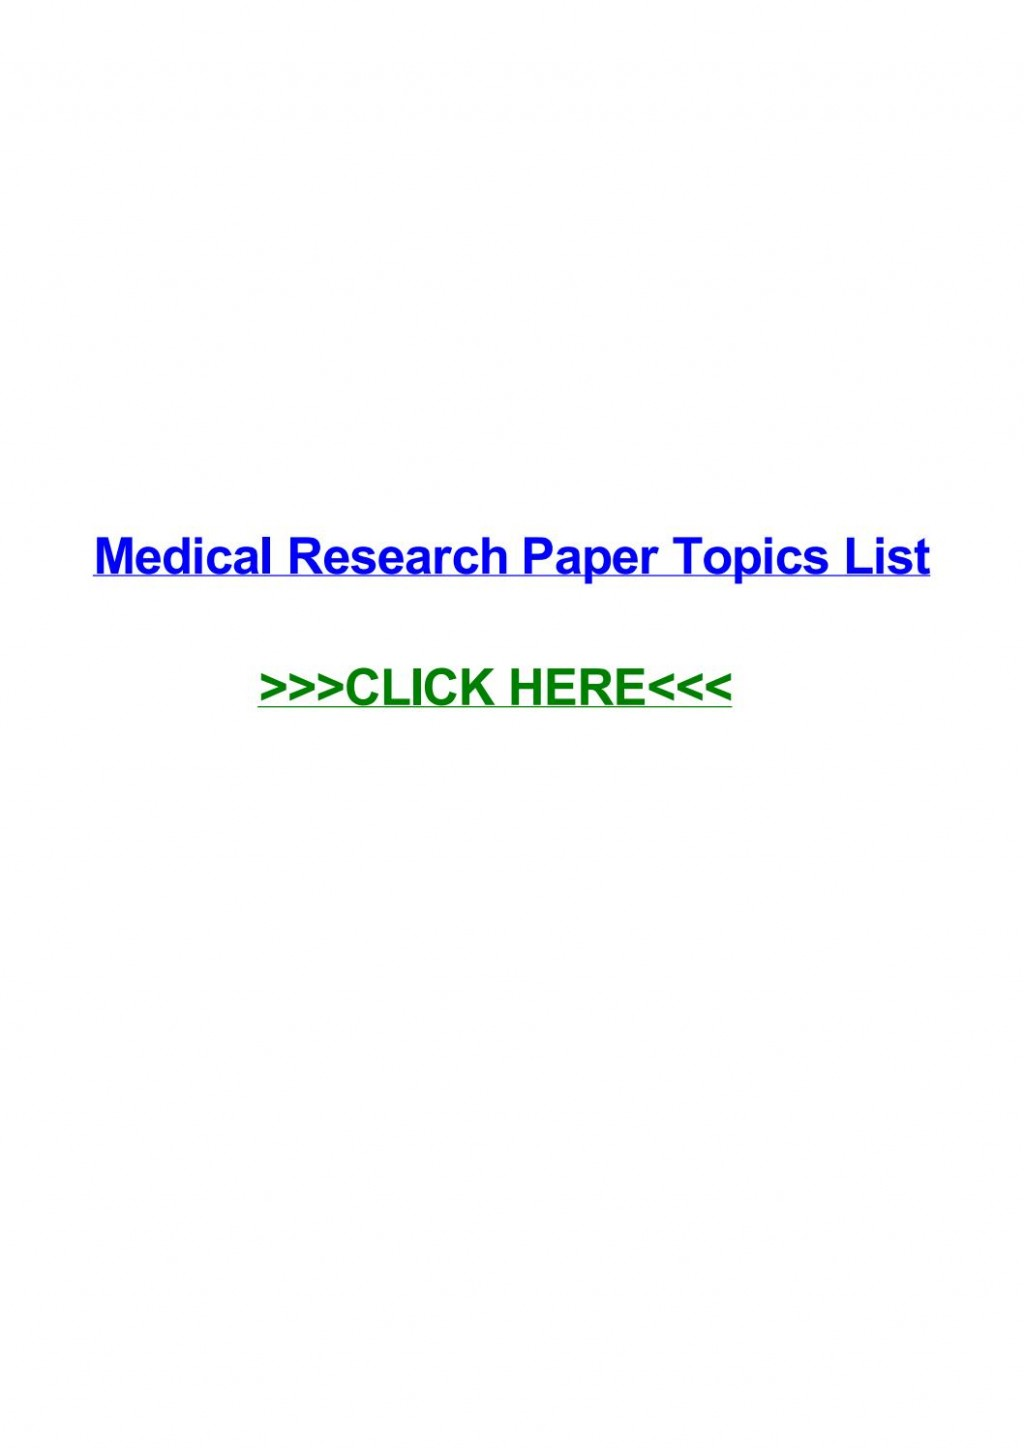 009 Medical Topics For Research Paper Page 1 Imposing Best Argumentative Field Papers Large